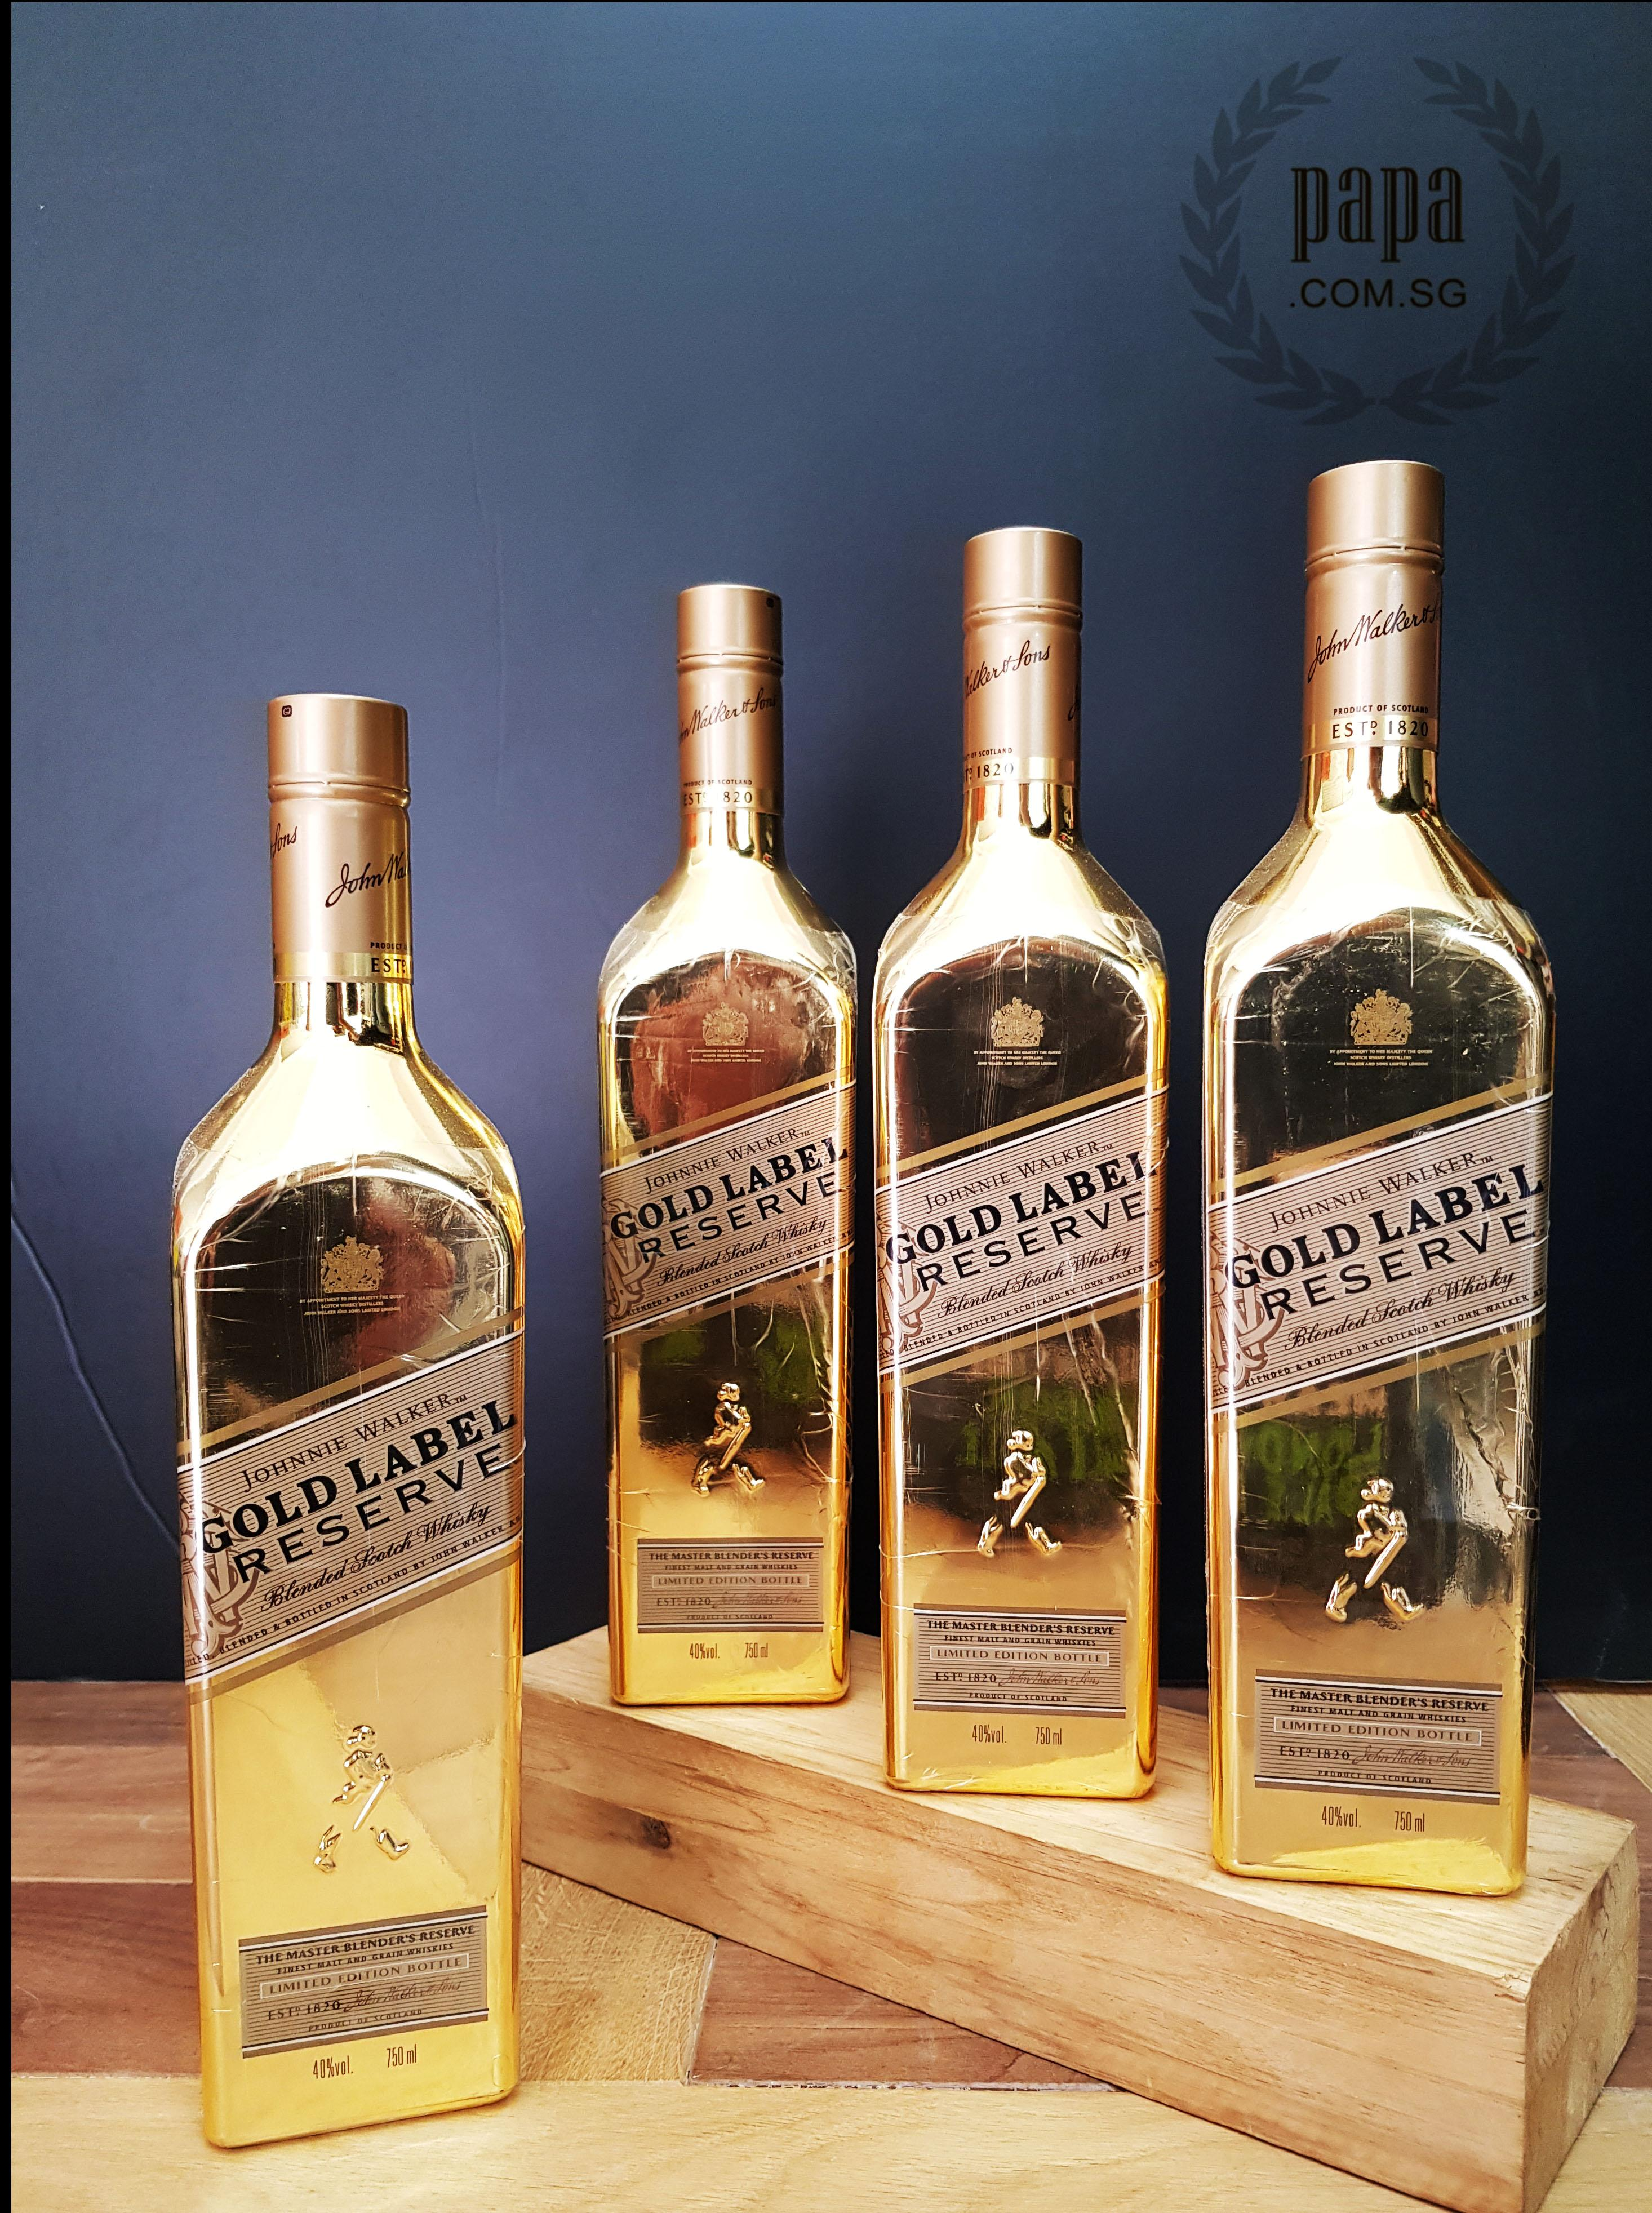 Johnny Walker Gold Bullion - Limited Edition Special Offer With Special Surprise Gifts By Papa.